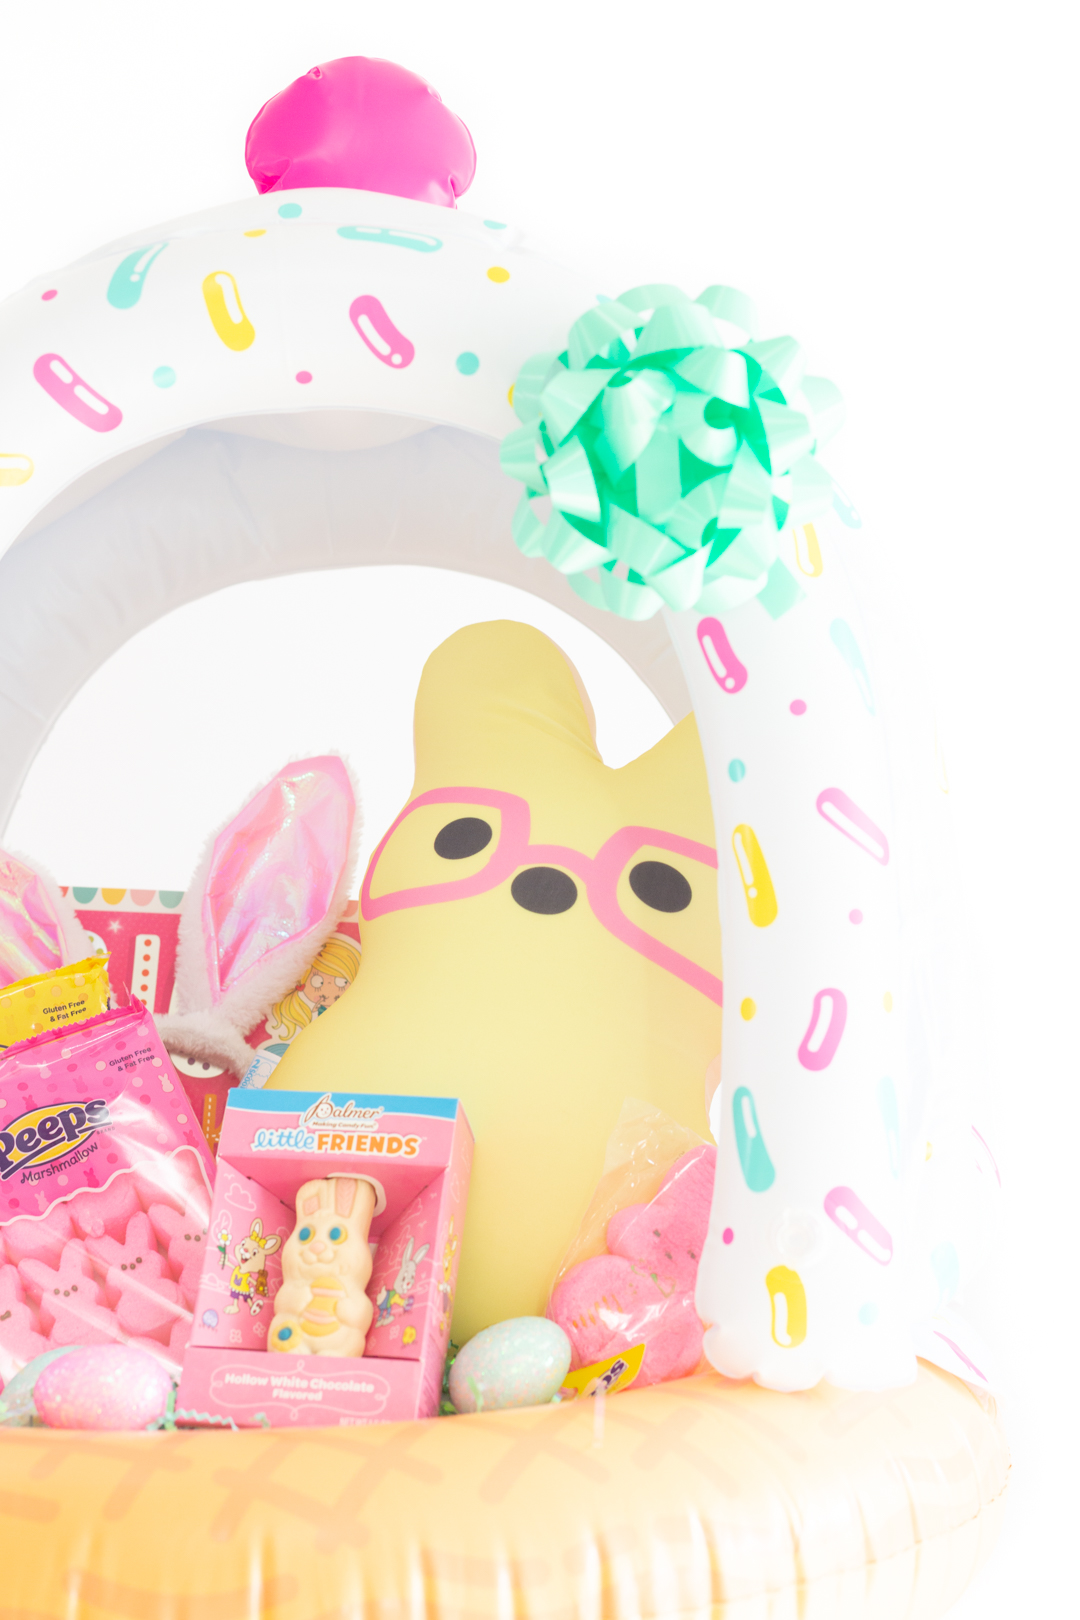 cute easter basket for kids. Pastel themed, yellow, pink and teal.